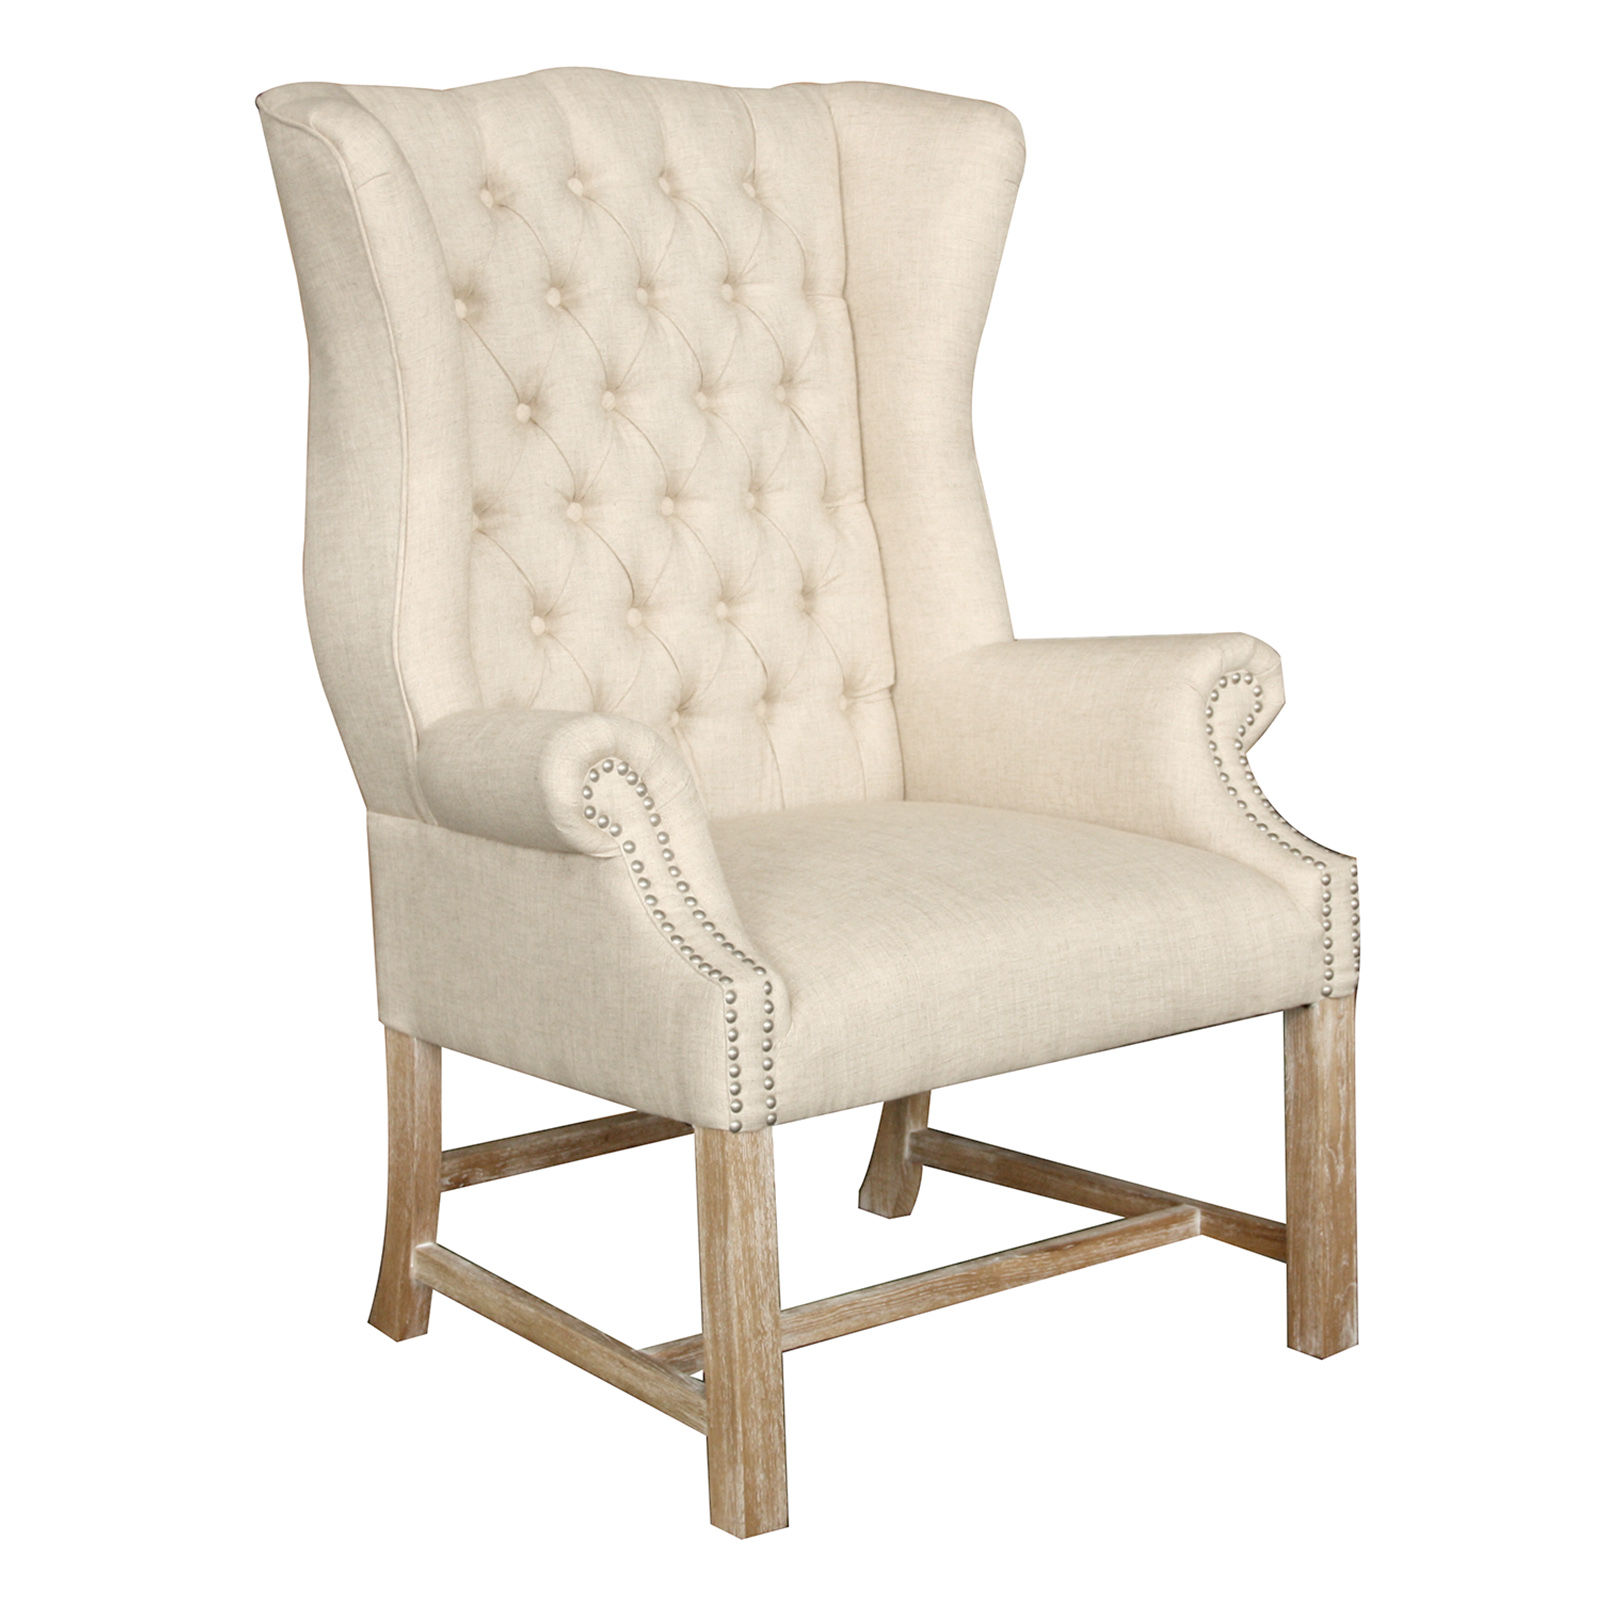 High Back Tufted Chair | Armless Accent Chairs | Tufted Chair